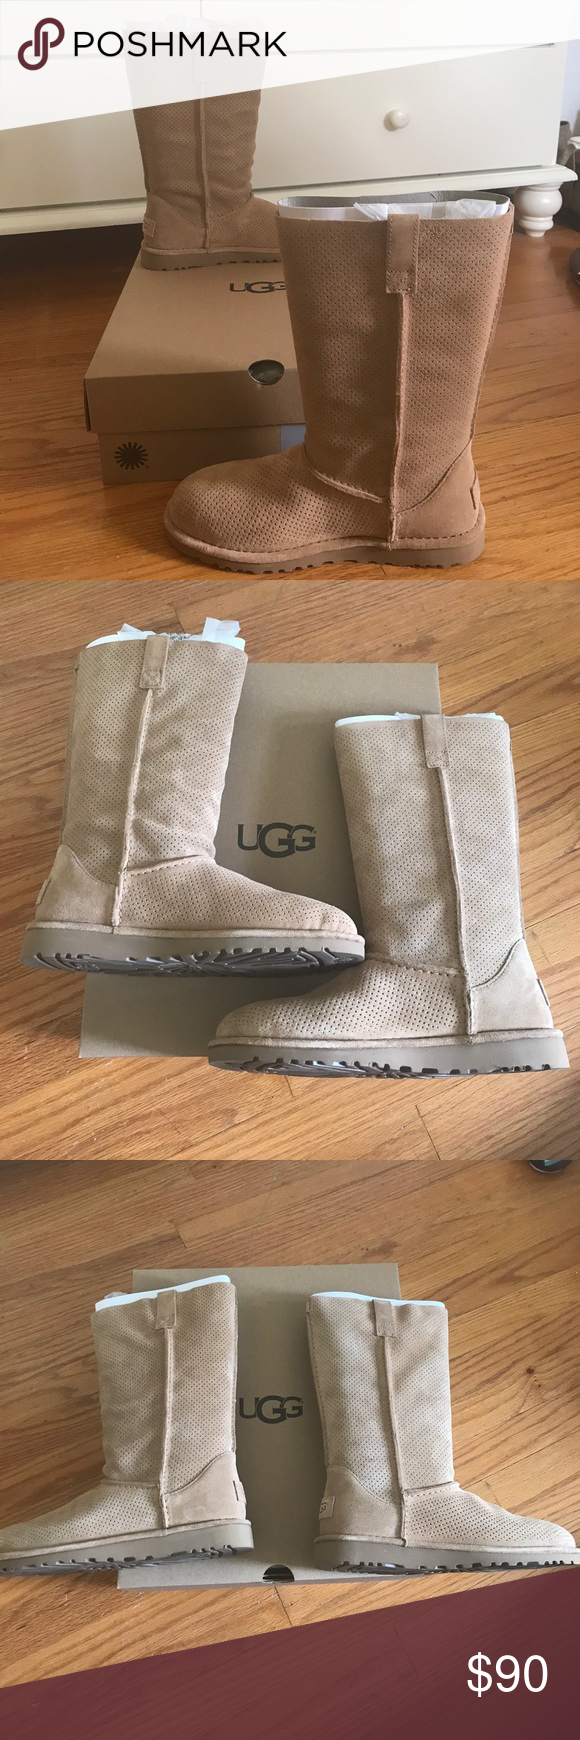 d411a37198f NEW Ugg 7 Classic Unlined Tall Perf Brand new in box. Ugg size 7 ...